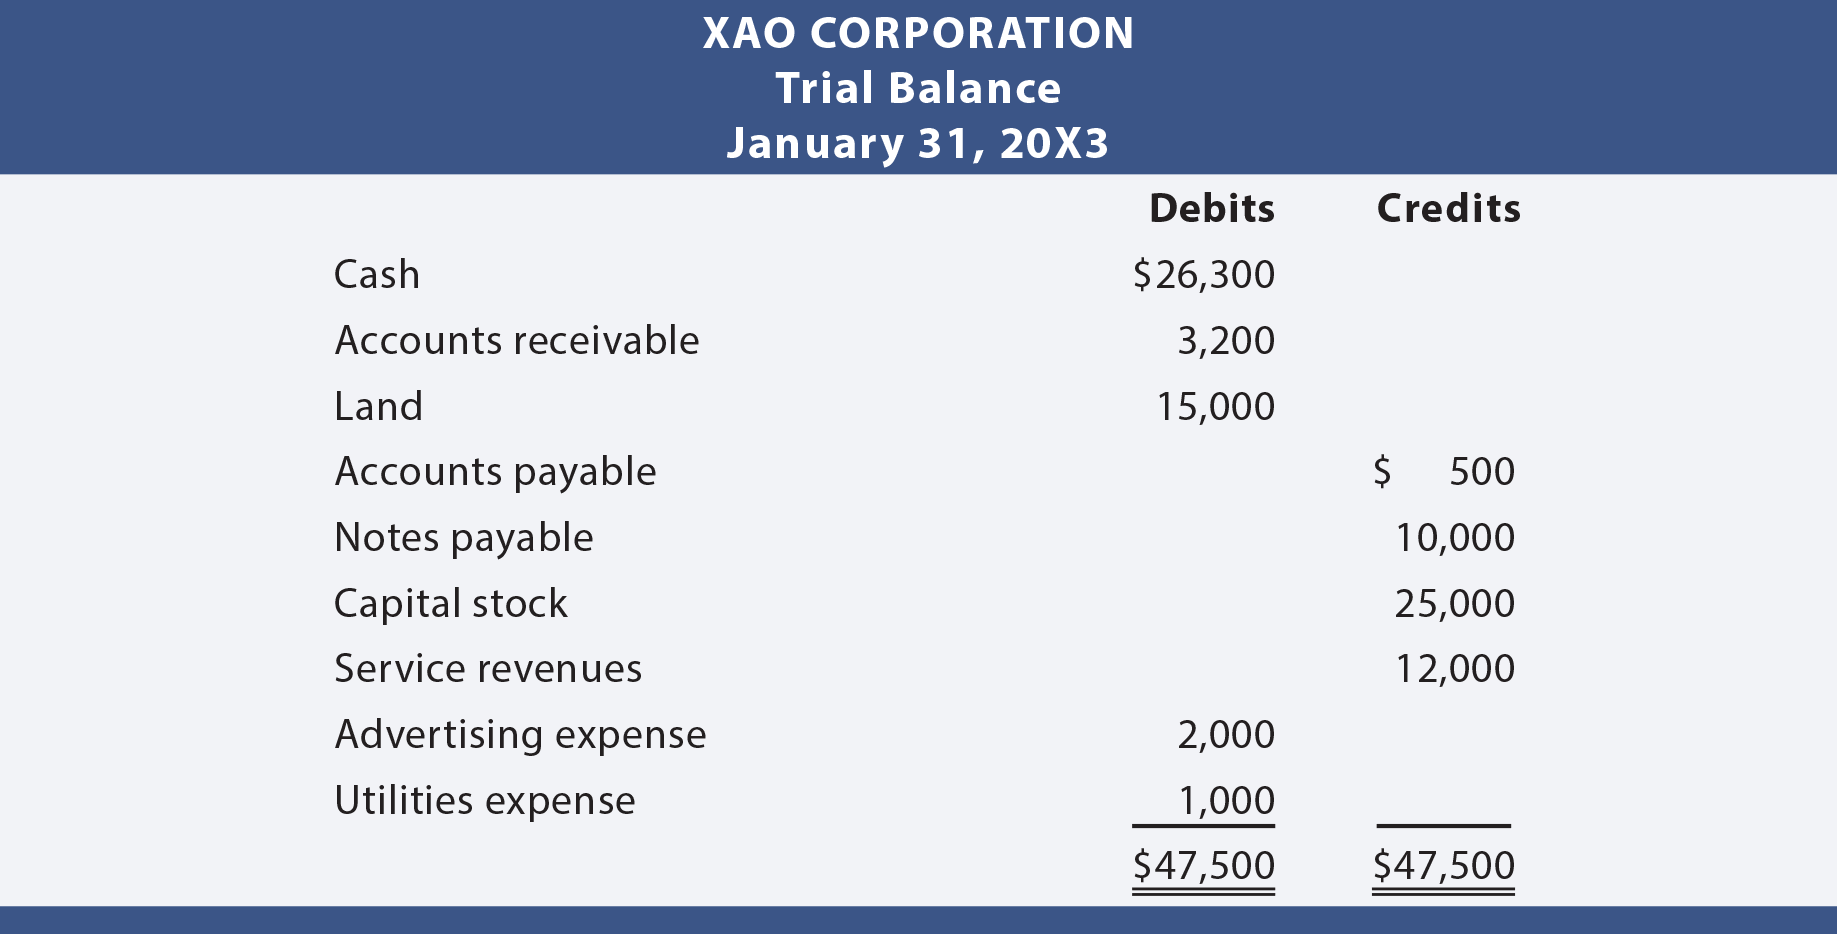 Xao trial balance illustration